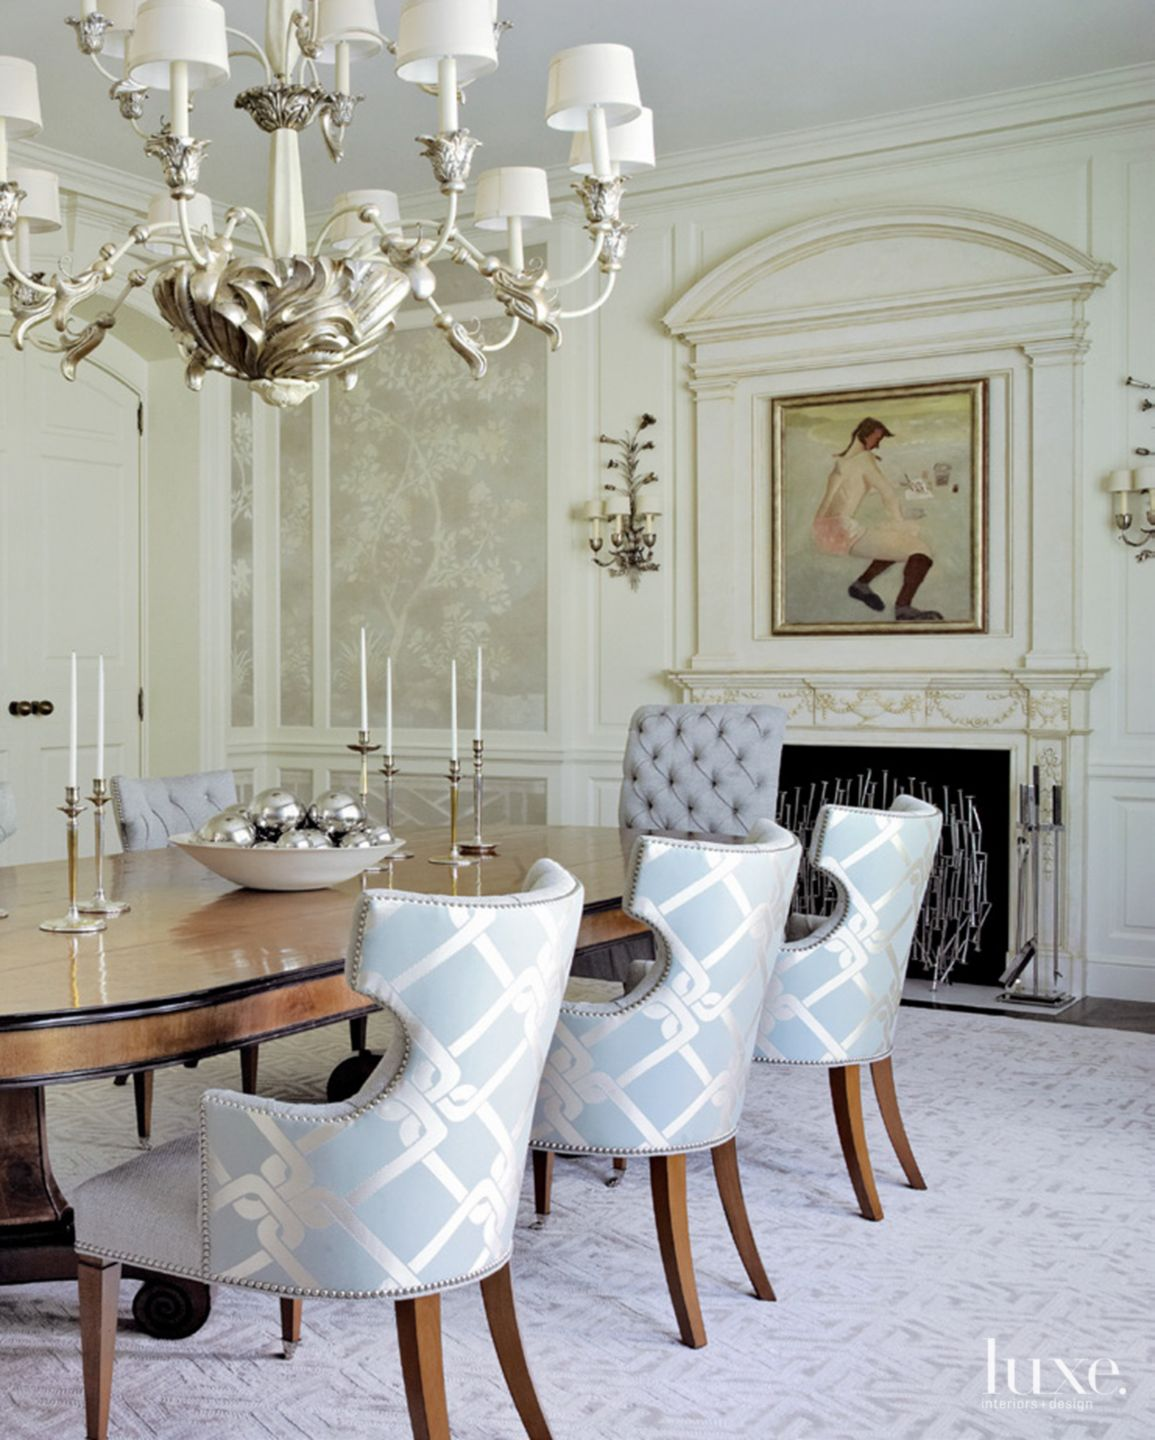 Eclectic Cream Dining Room with Lamp Shade Chandelier